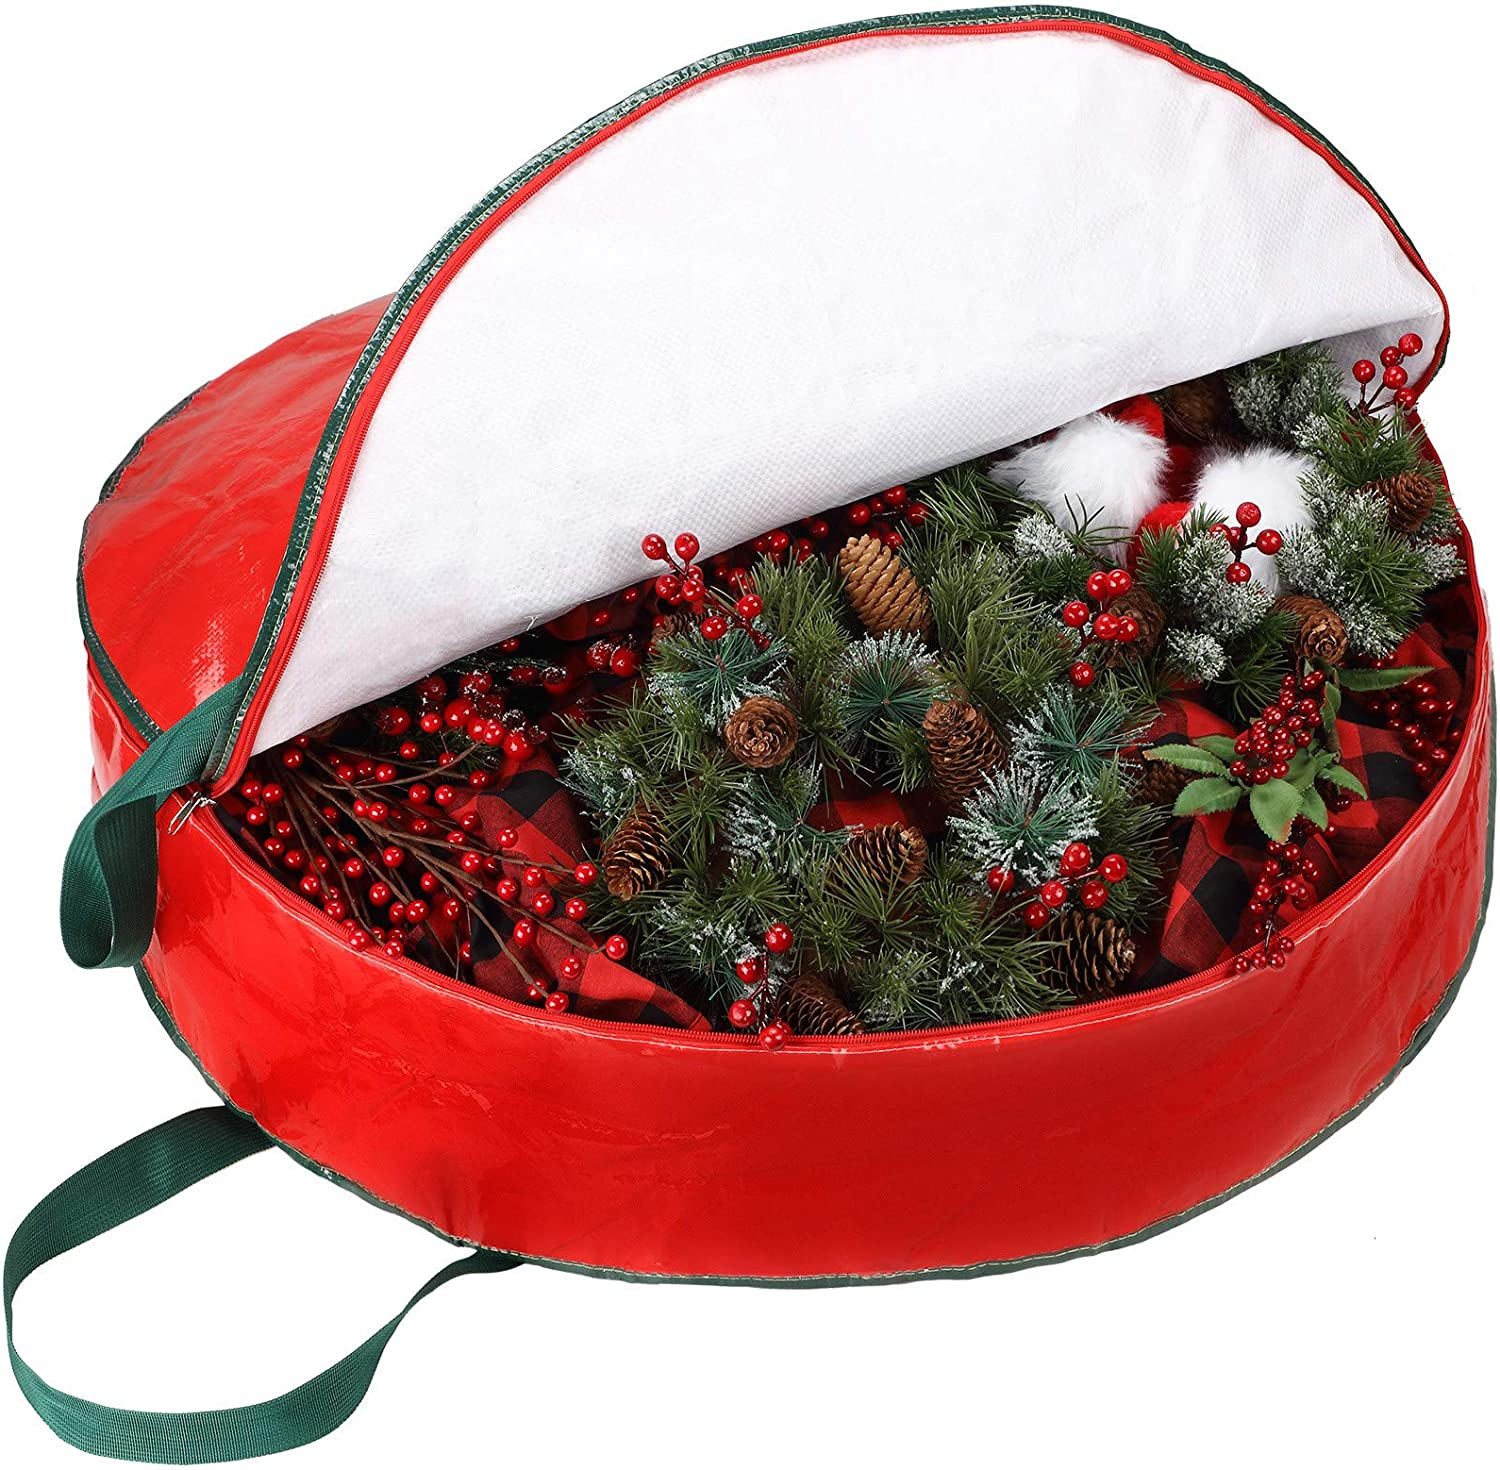 Wreath Storage Portland Mall Bag Container 30 Raleigh Mall 7 x Inch Zippere